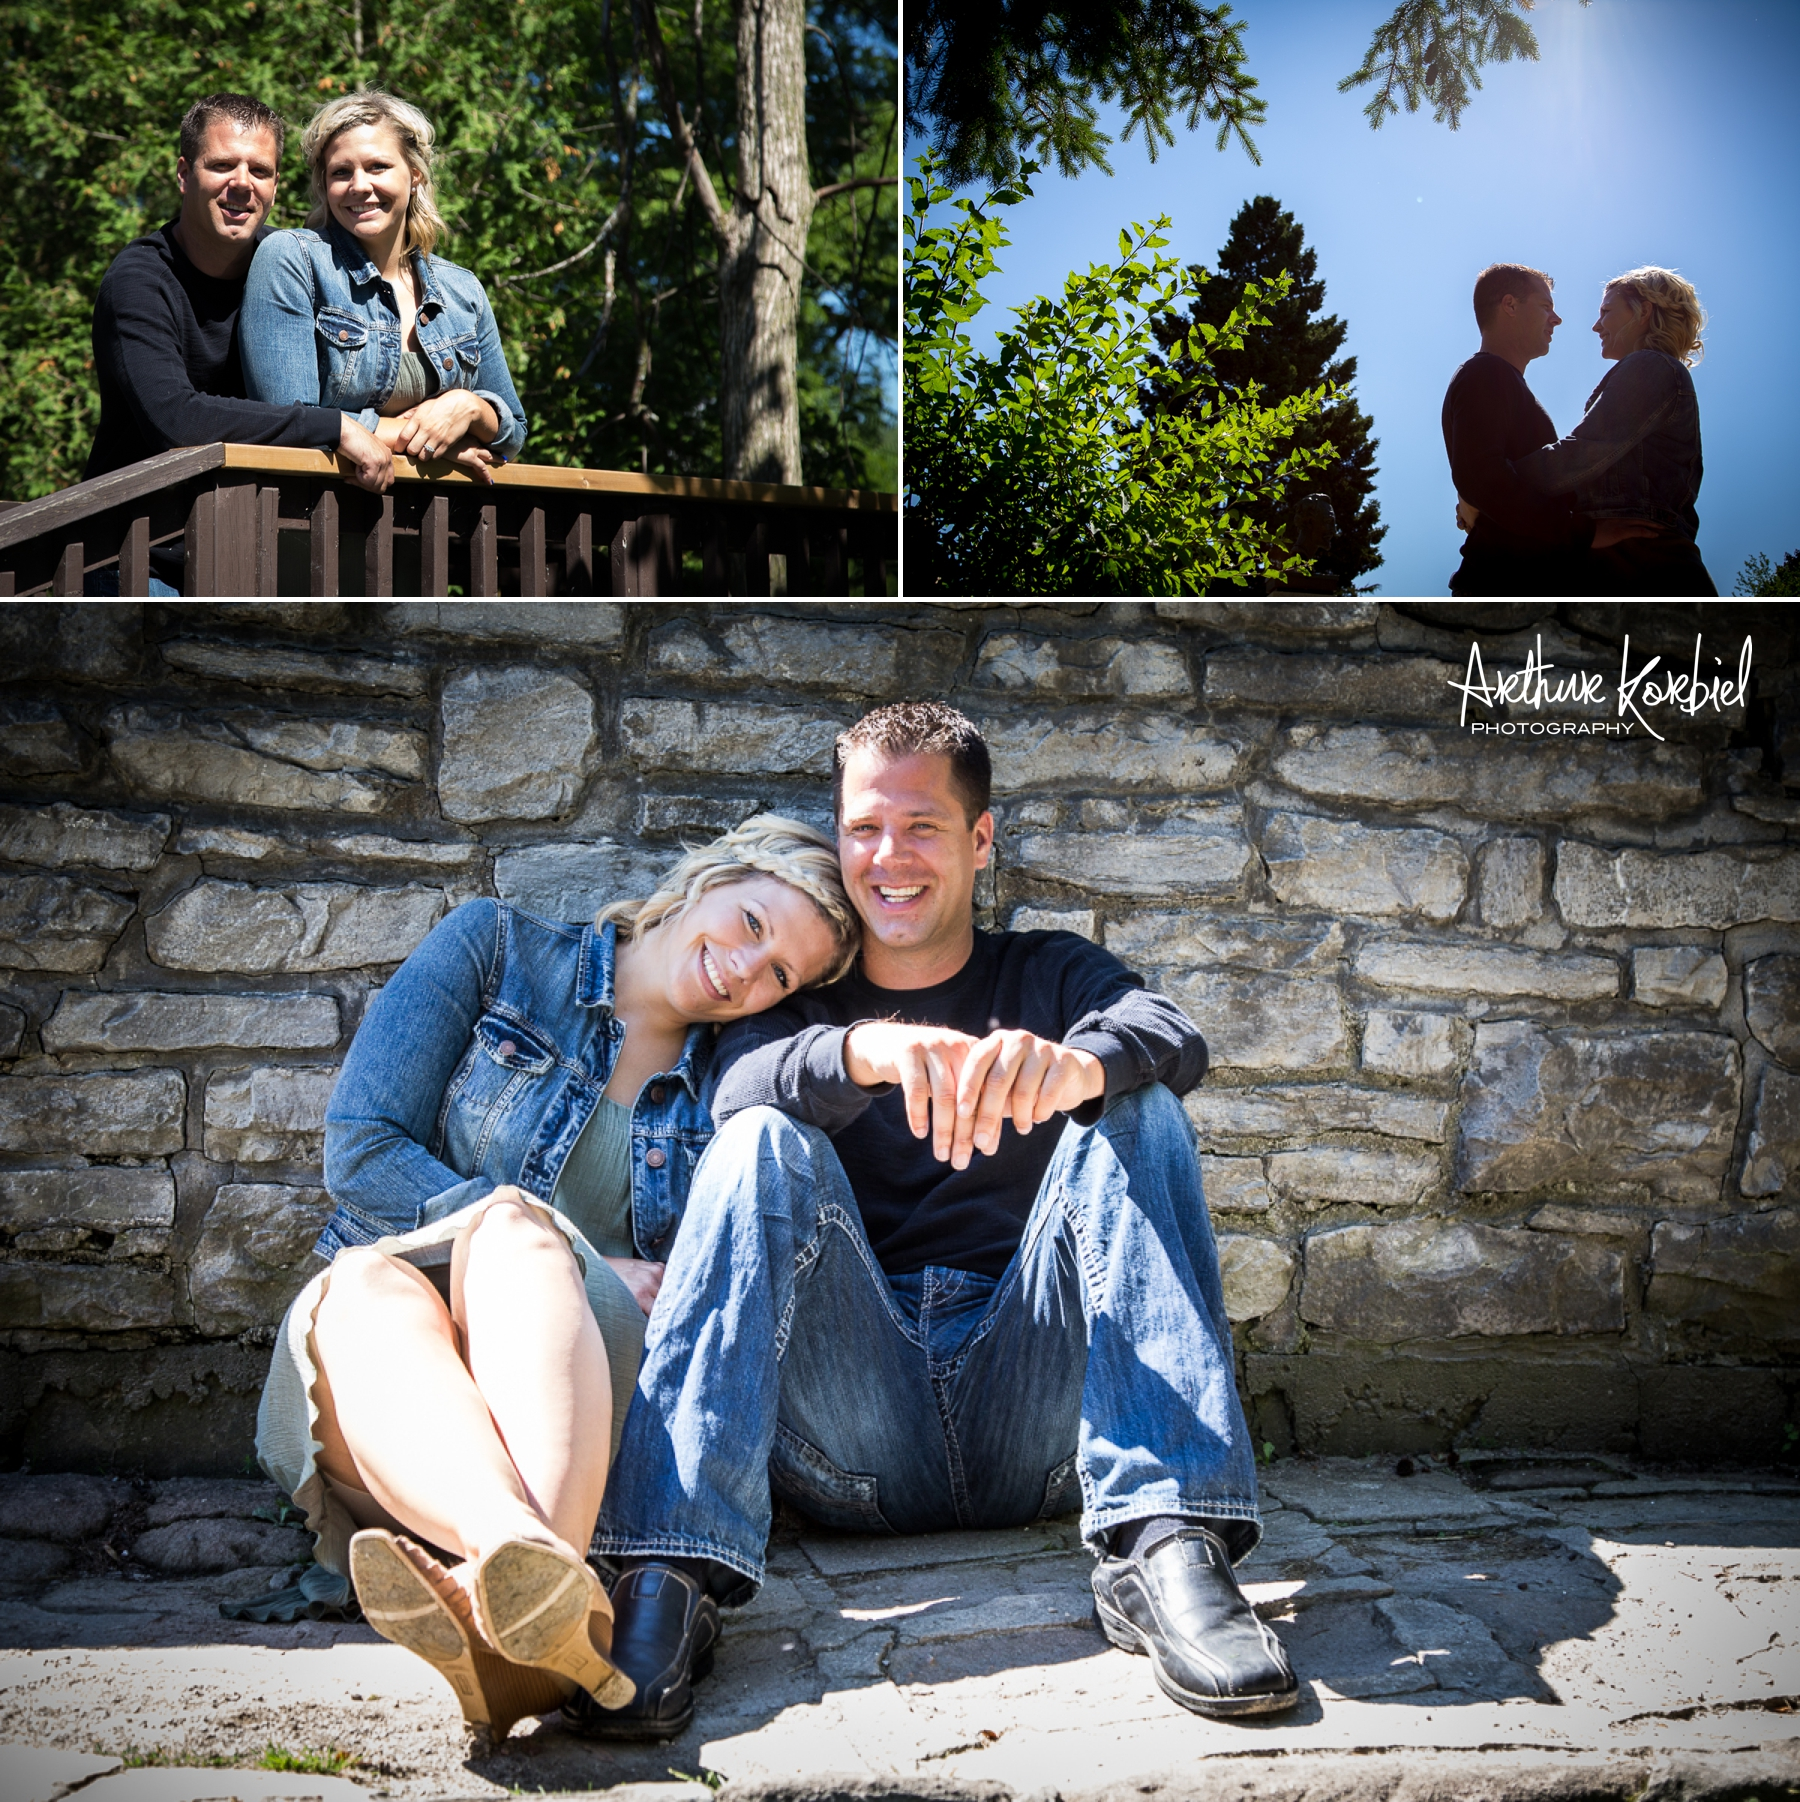 Arthur Korbiel Photography - London Engagement Photographer - Laura & Rick_004.jpg